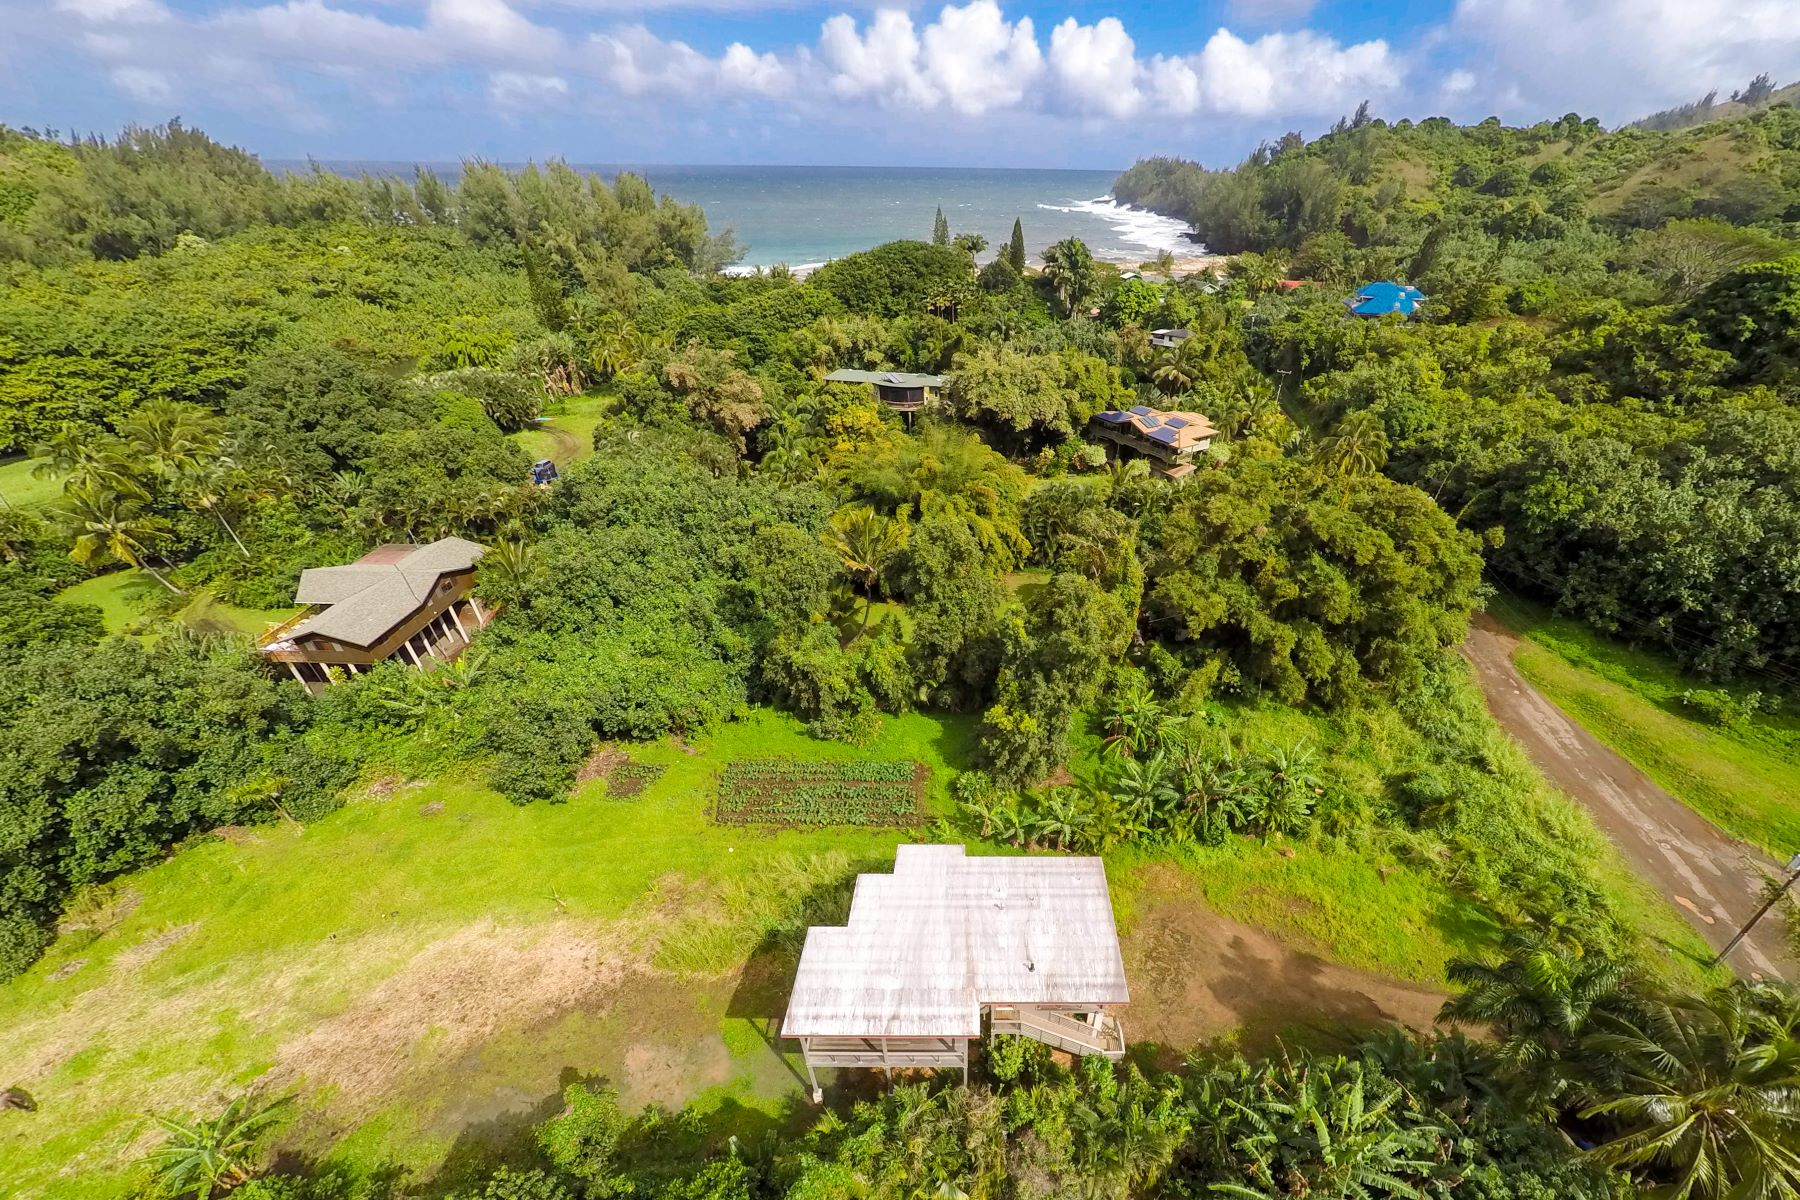 Single Family Homes for Sale at 4600 ANANALU RD HANALEI, HI 96722 4600 ANANALU RD Hanalei, Hawaii 96722 United States